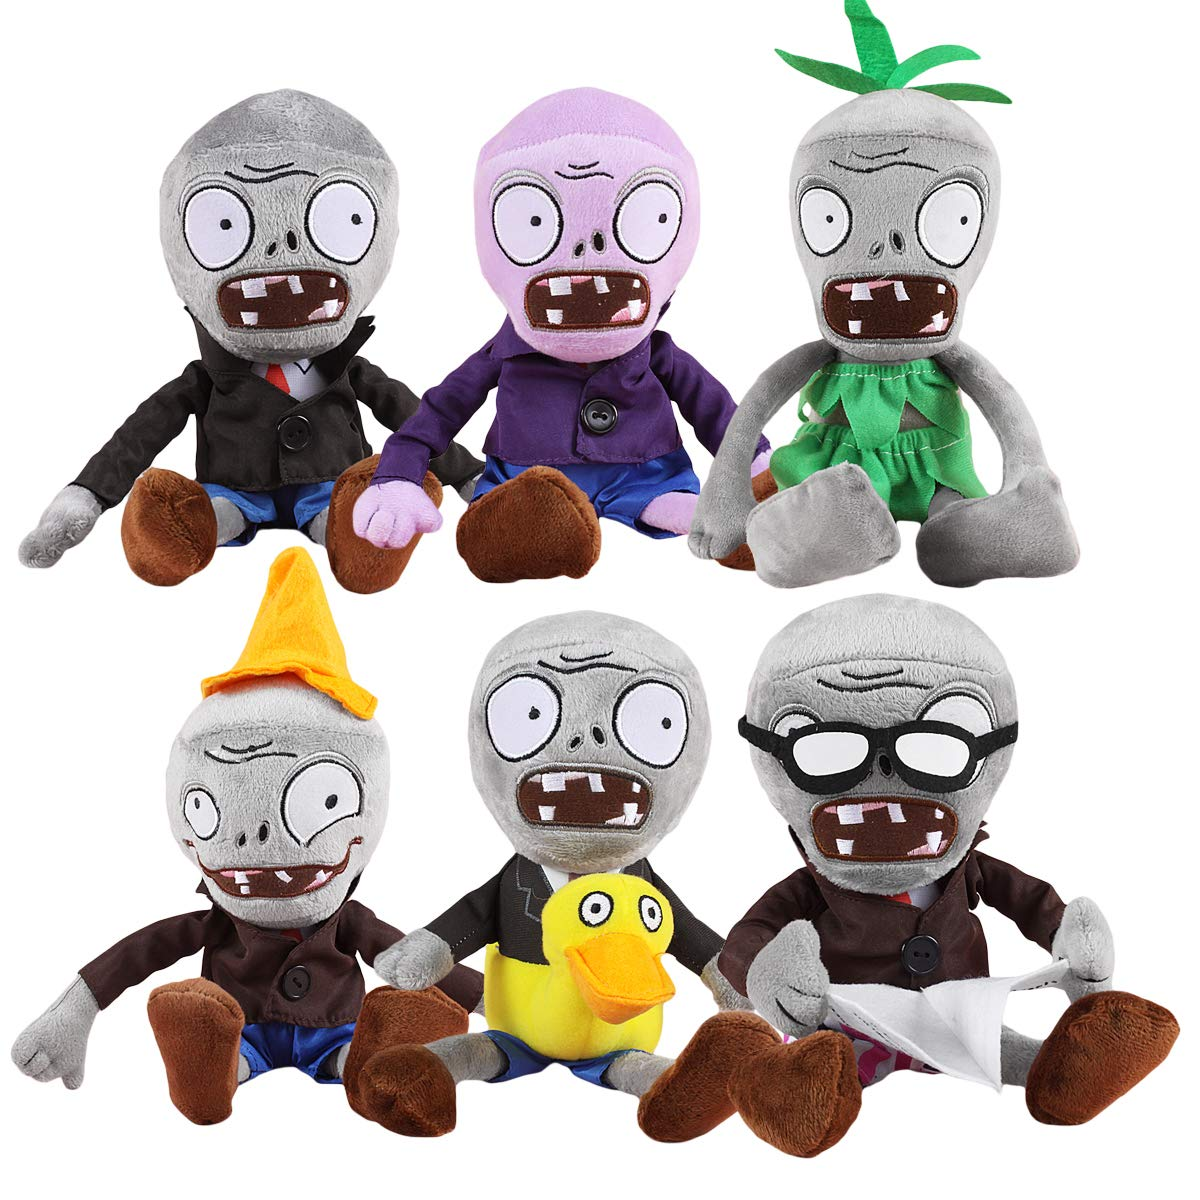 TavasHome Plants vs Zombies Series Stuffed Plush PVZ Toy Set of 6 Pieces Soft Game Doll Funny Gift by TavasHome